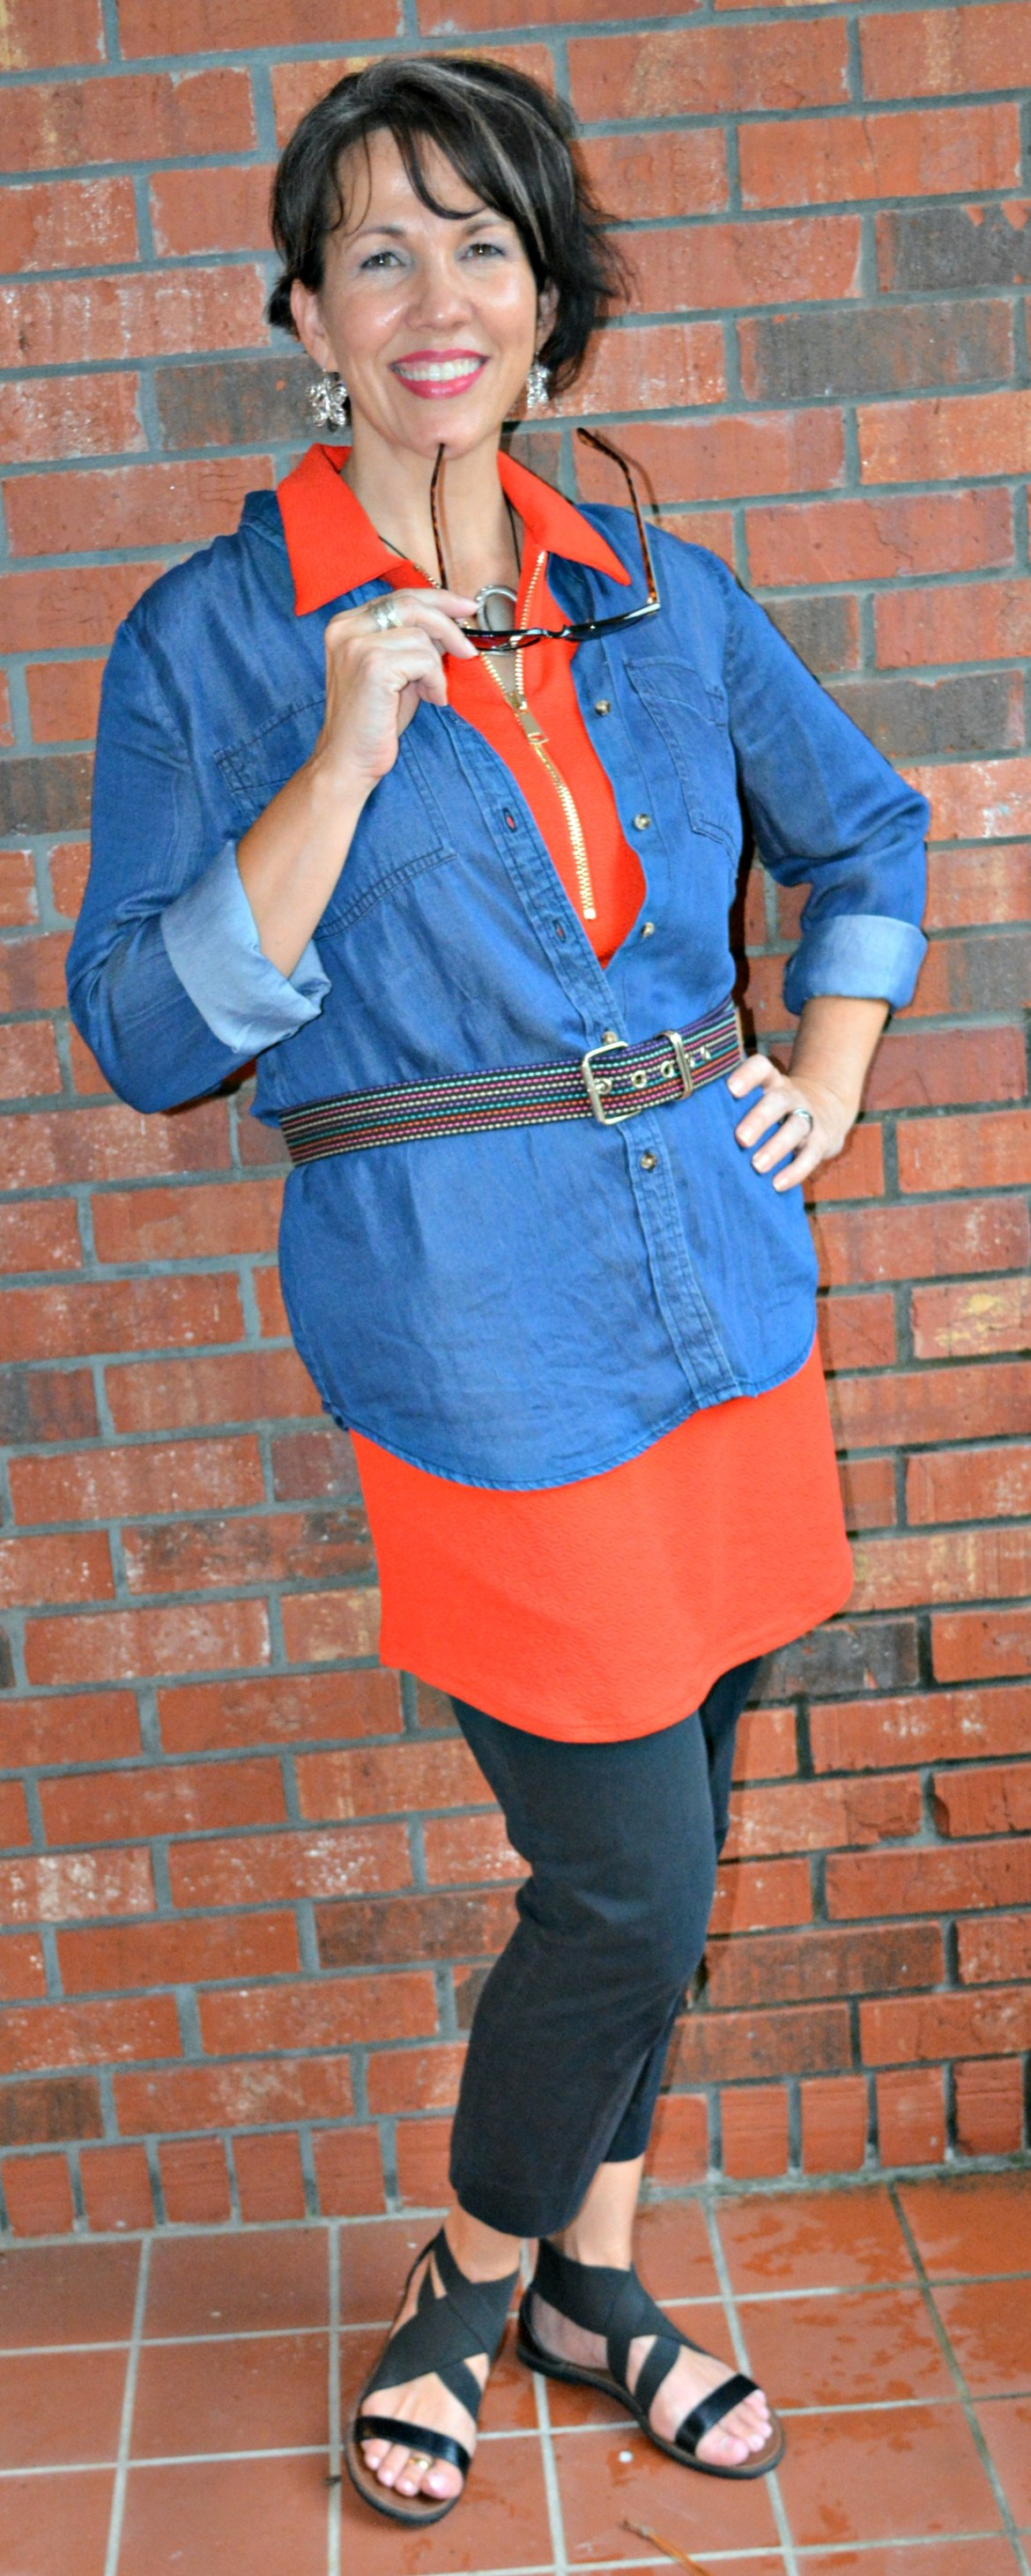 Shellie Bowdoin layers her Chambray shirt over an orange tunic